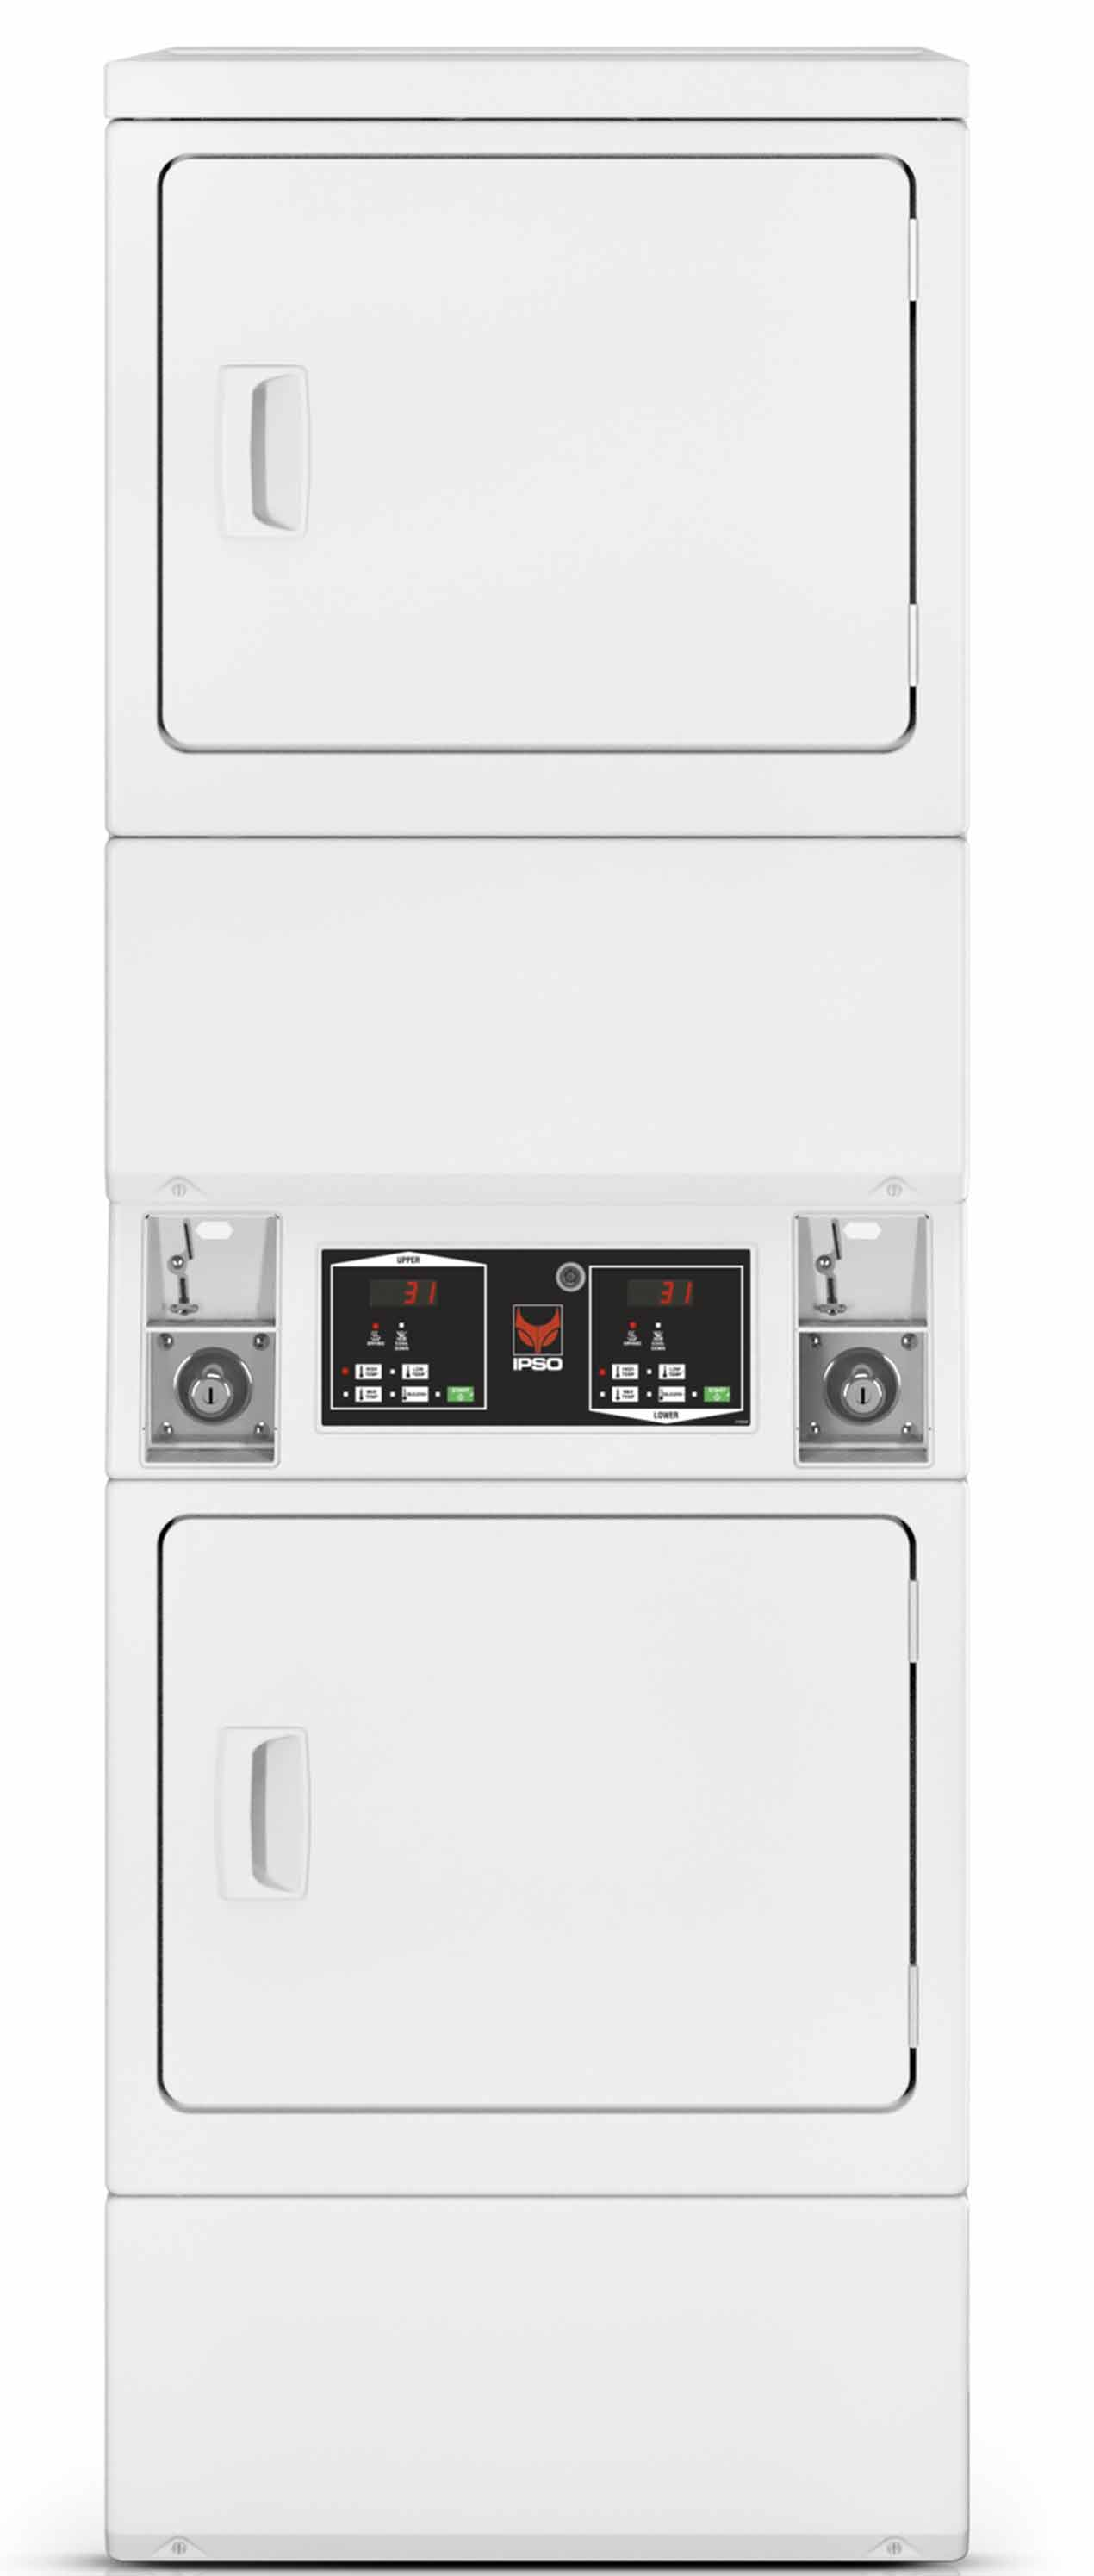 Coin Operated Stack Dryers